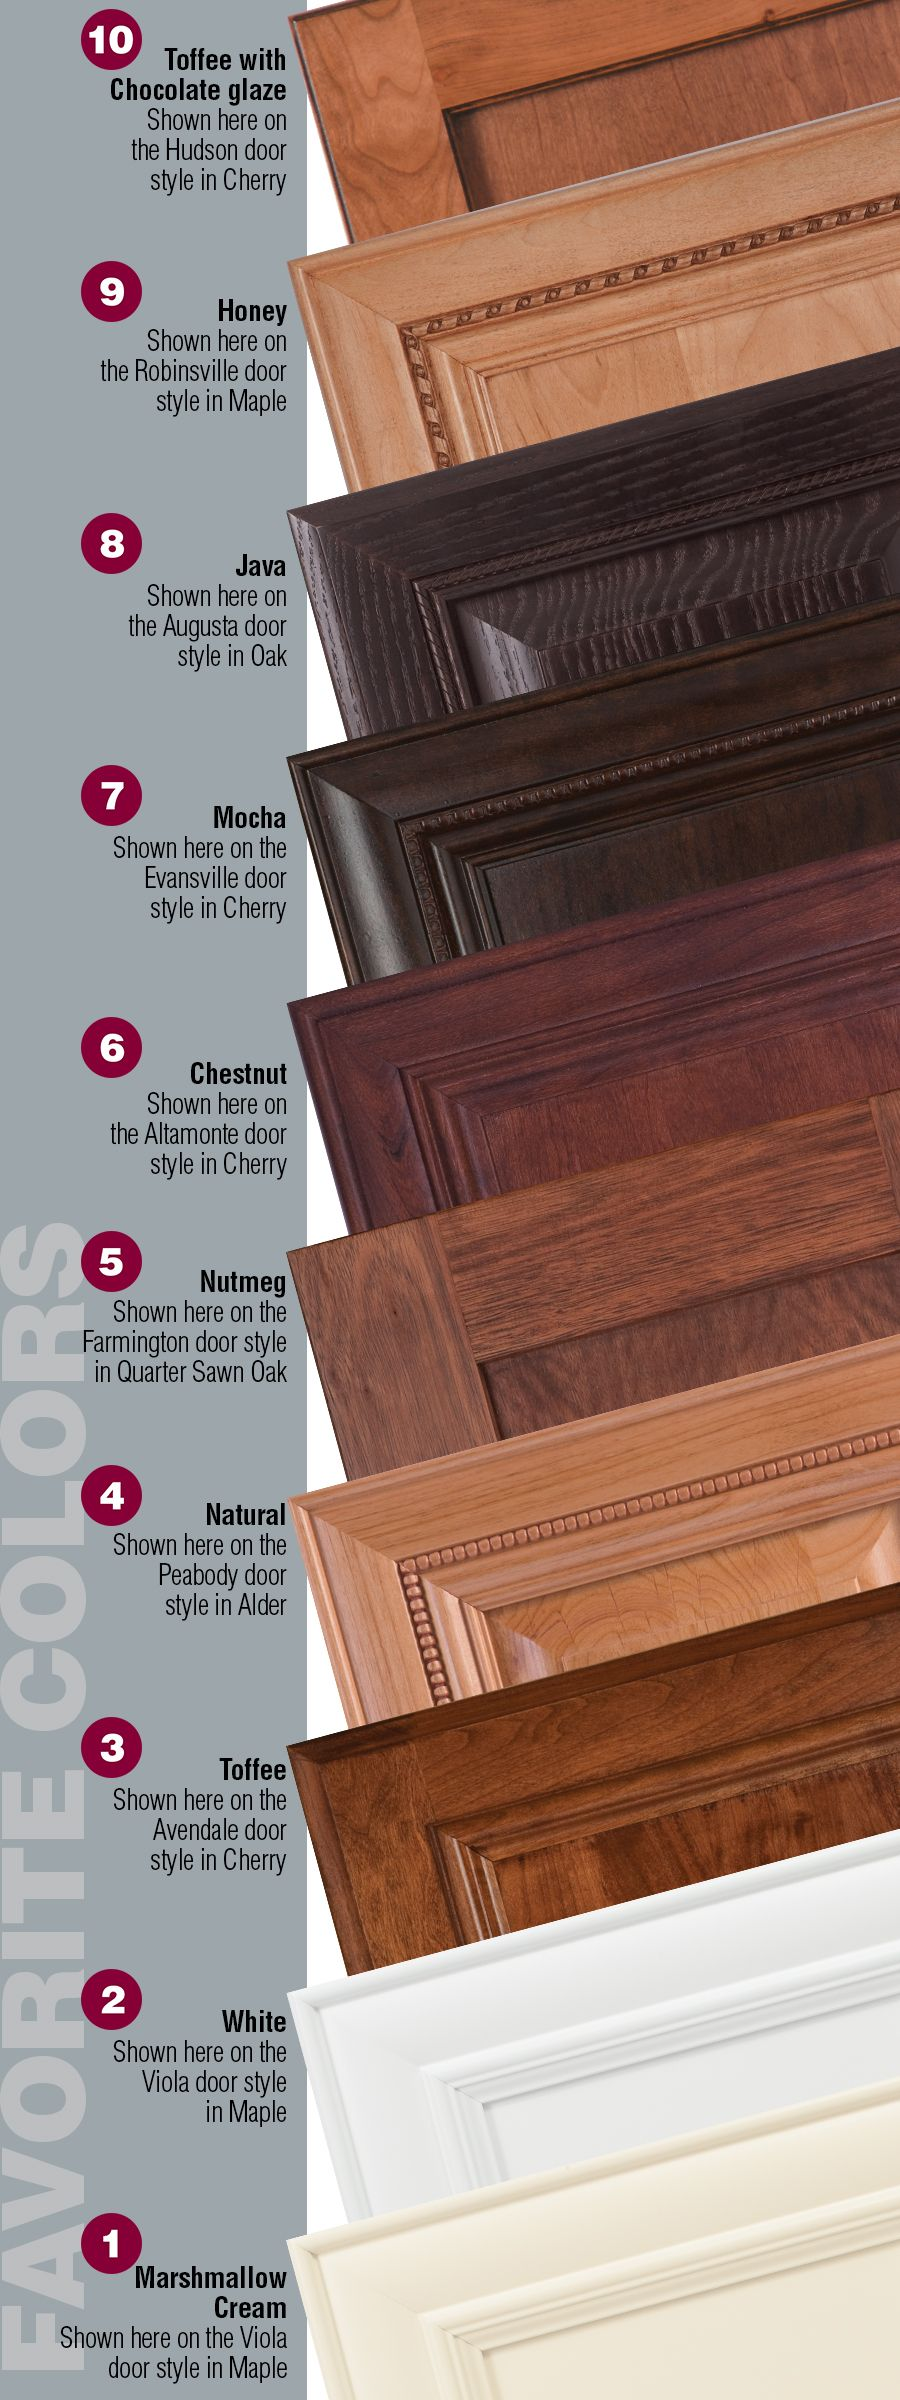 Starmark Cabinetry Has Over 600 000 Combinations Of Colors And Styles Are Ready Brown Kitchen Cabinets Kitchen Cabinets And Cupboards Quality Kitchen Cabinets